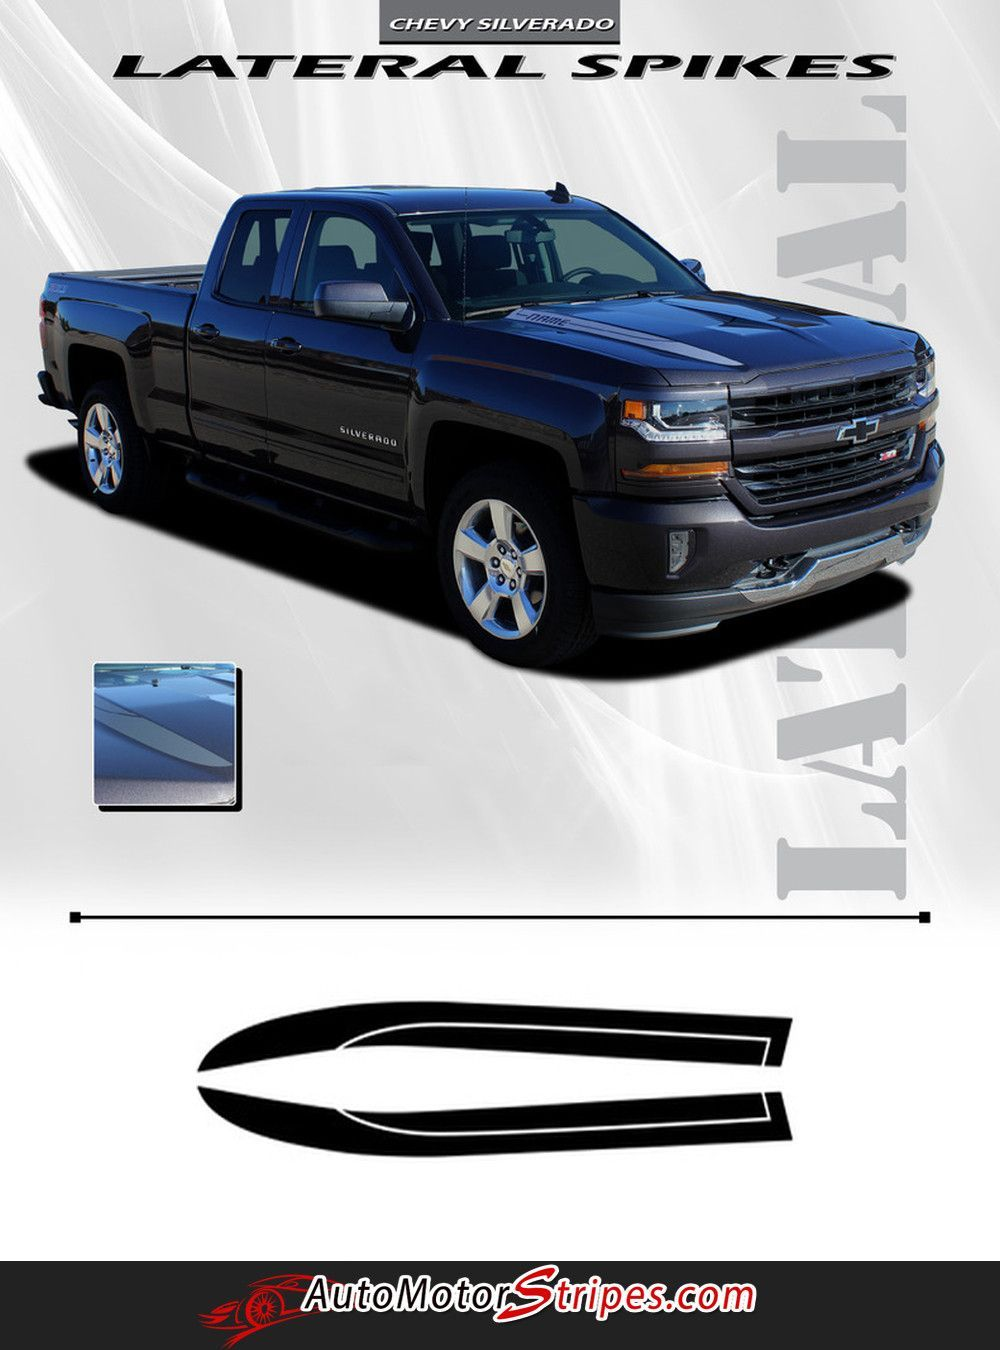 Silverado 2003 chevy silverado 1500 accessories : 2016-2018 Chevy Silverado 1500 Lateral Spikes Double Hood Spear ...